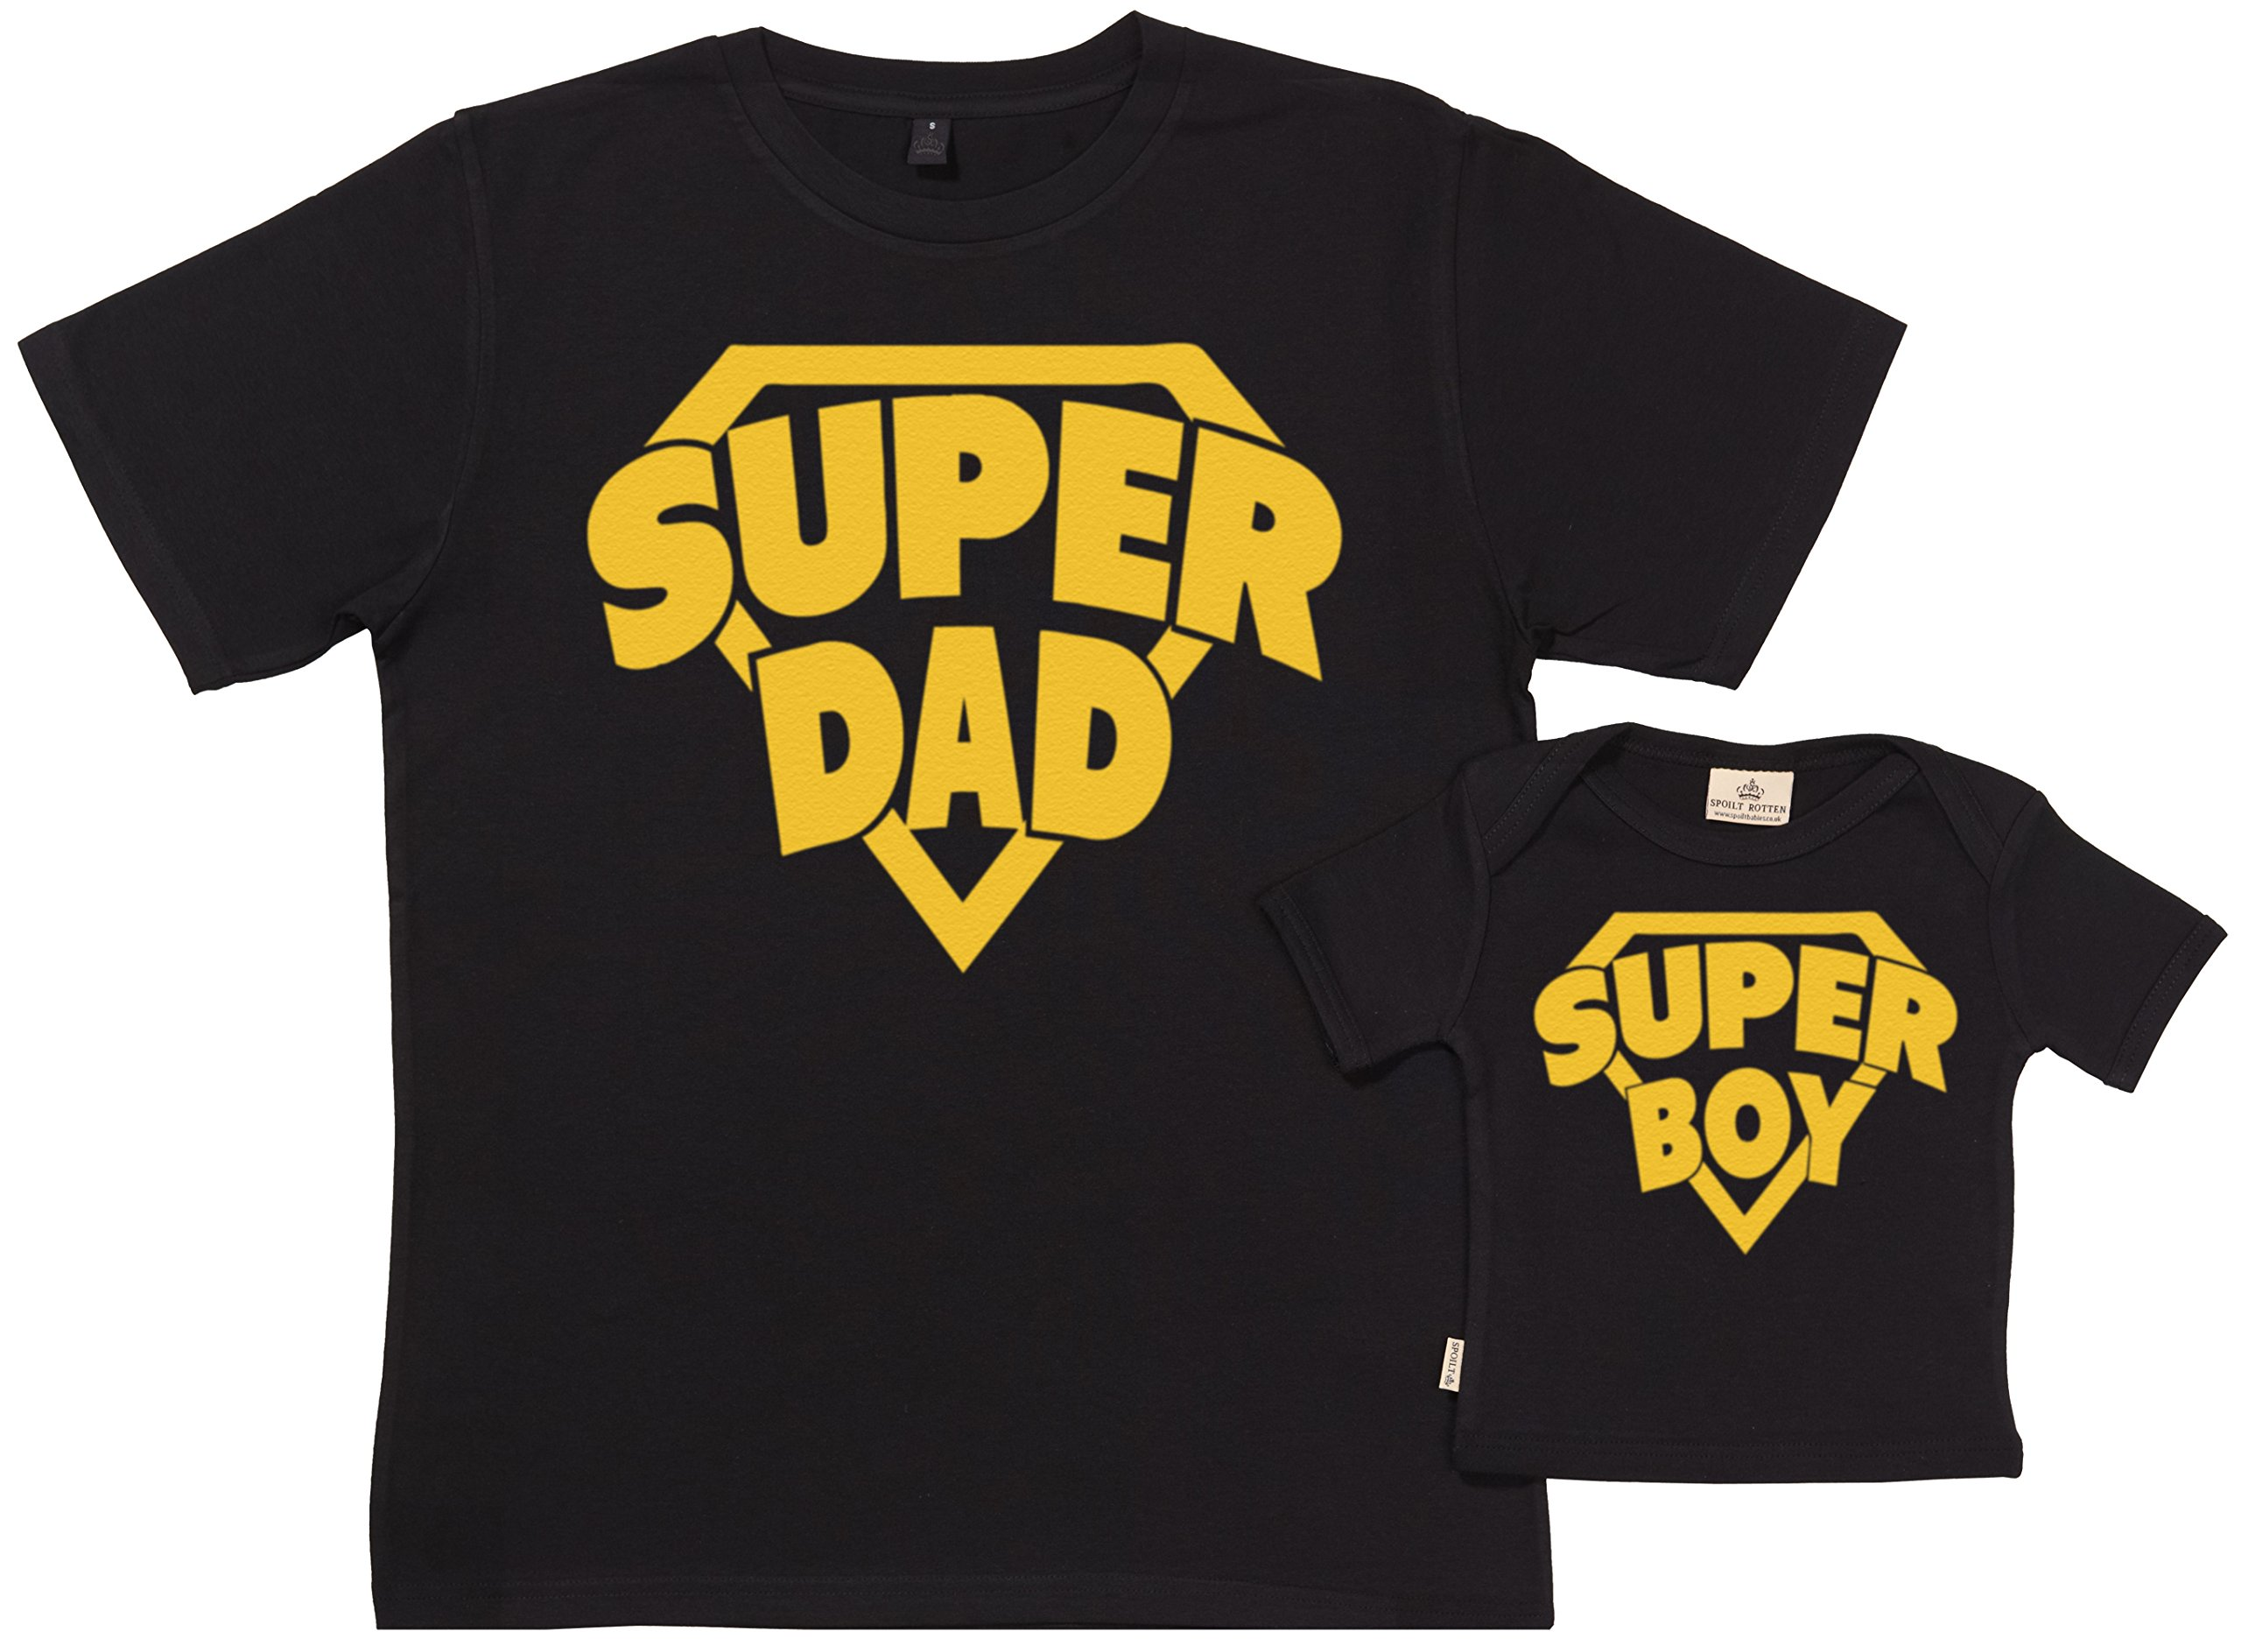 SR - Gift Boxed Dad & Baby Gift Set - SuperDad SuperBoy Organic Matching Father & Baby T-Shirts - Black - X-Large & 18-24 Months by Spoilt Rotten